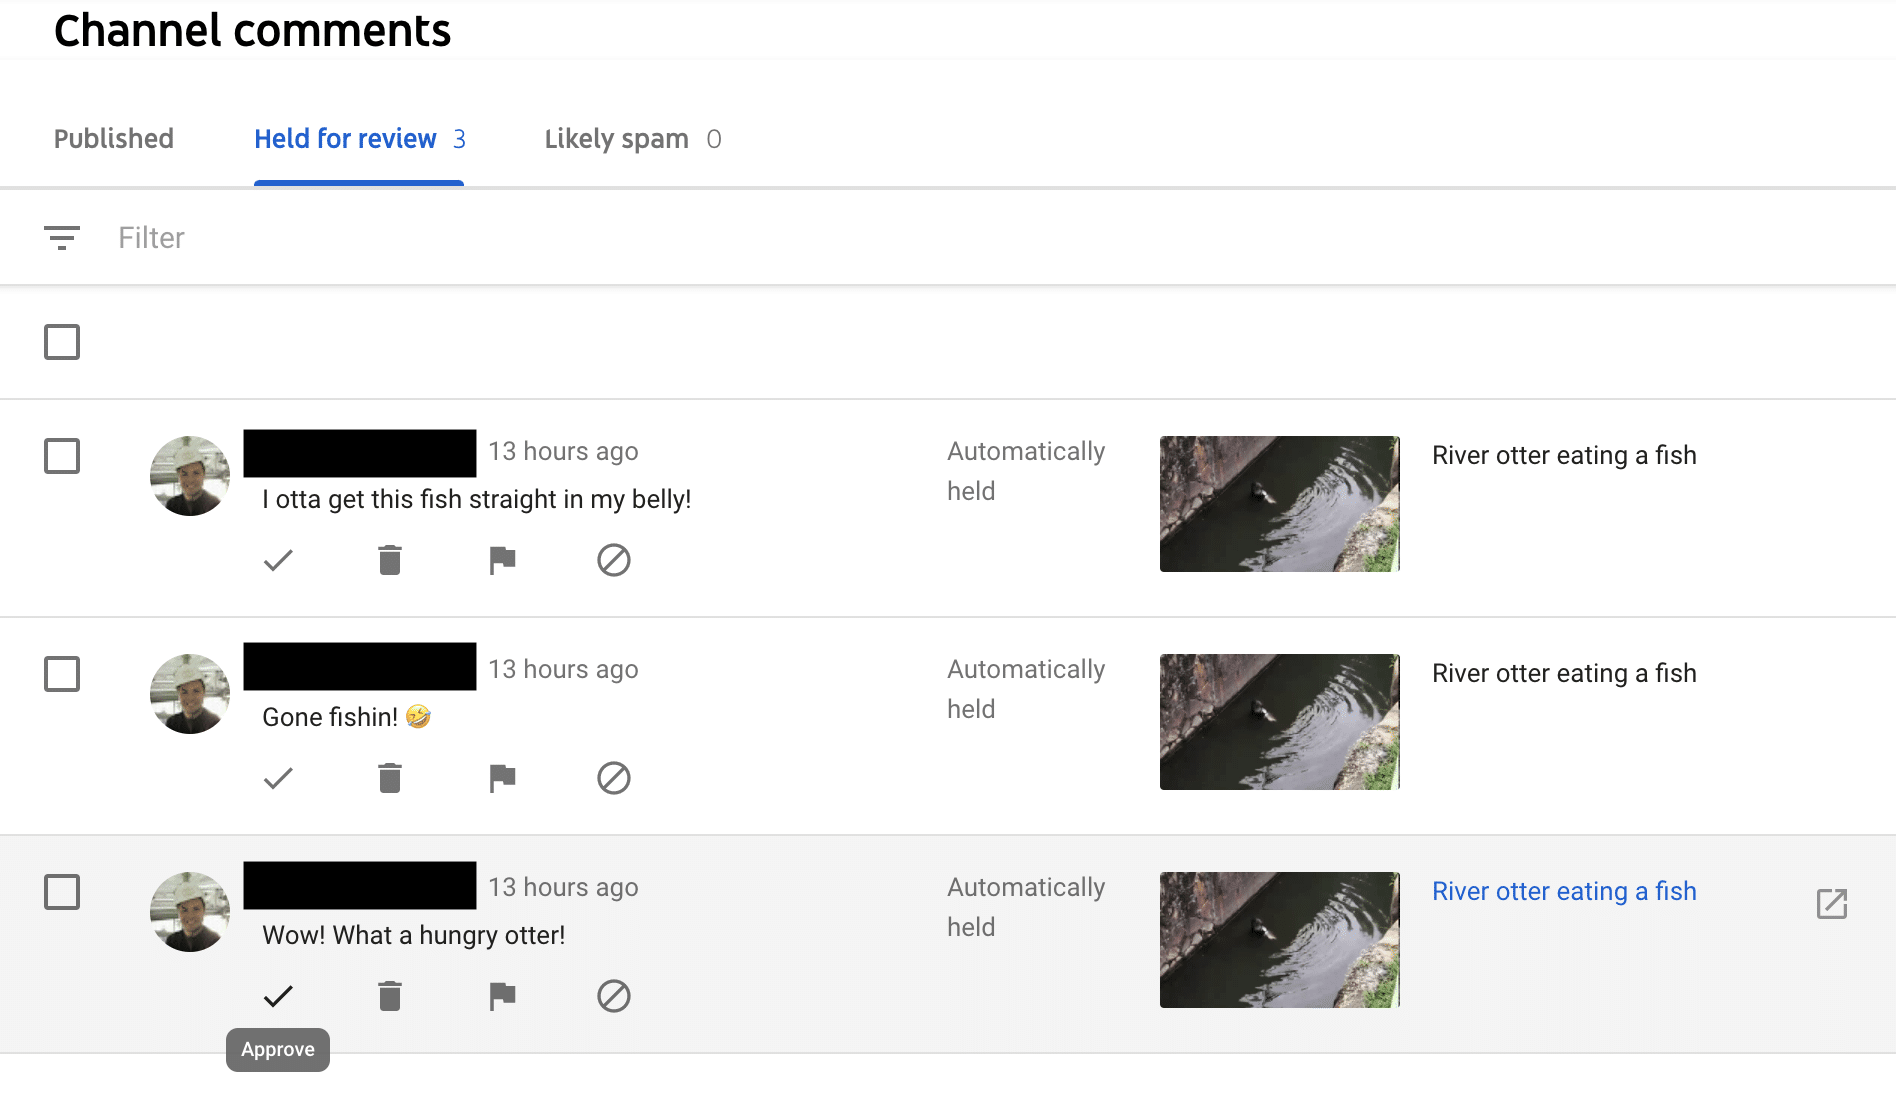 YouTube comments held for review